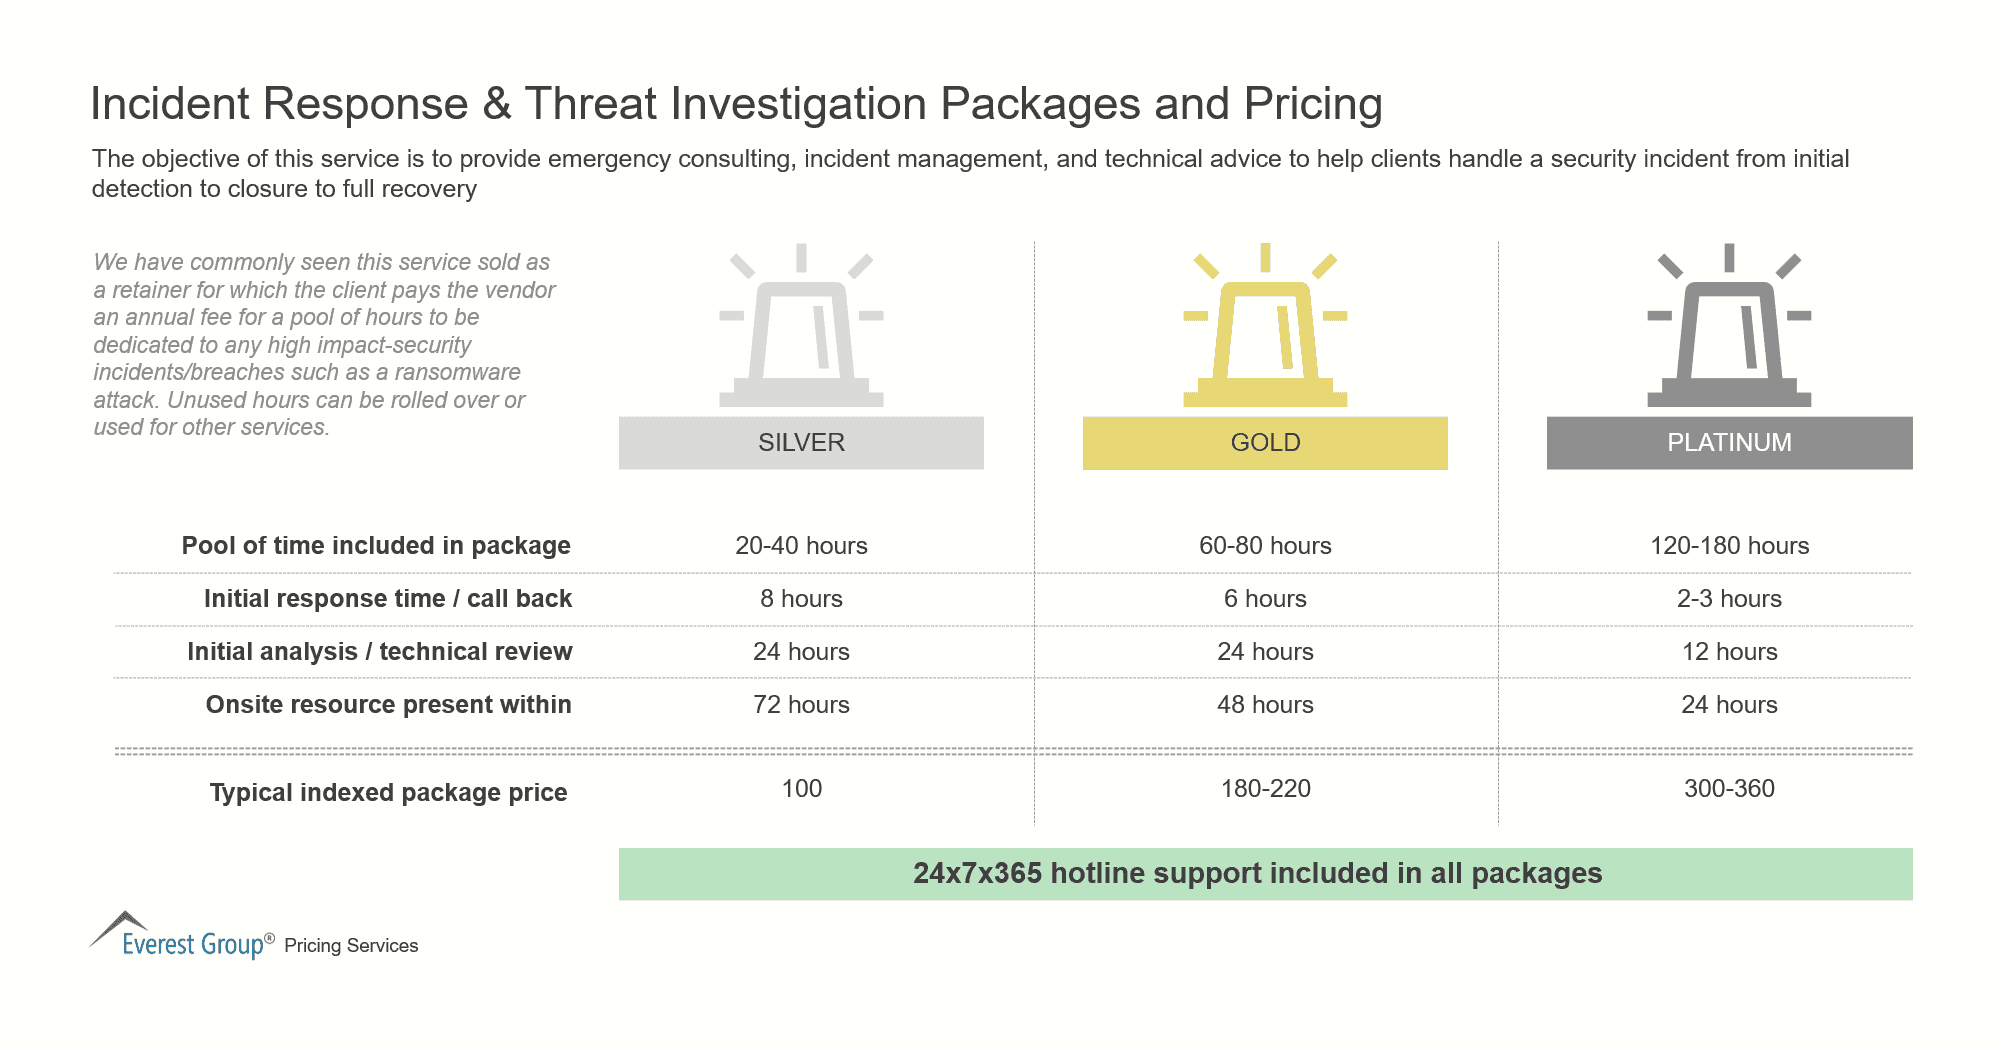 Incident Response & Threat Investigation Packages and Pricing